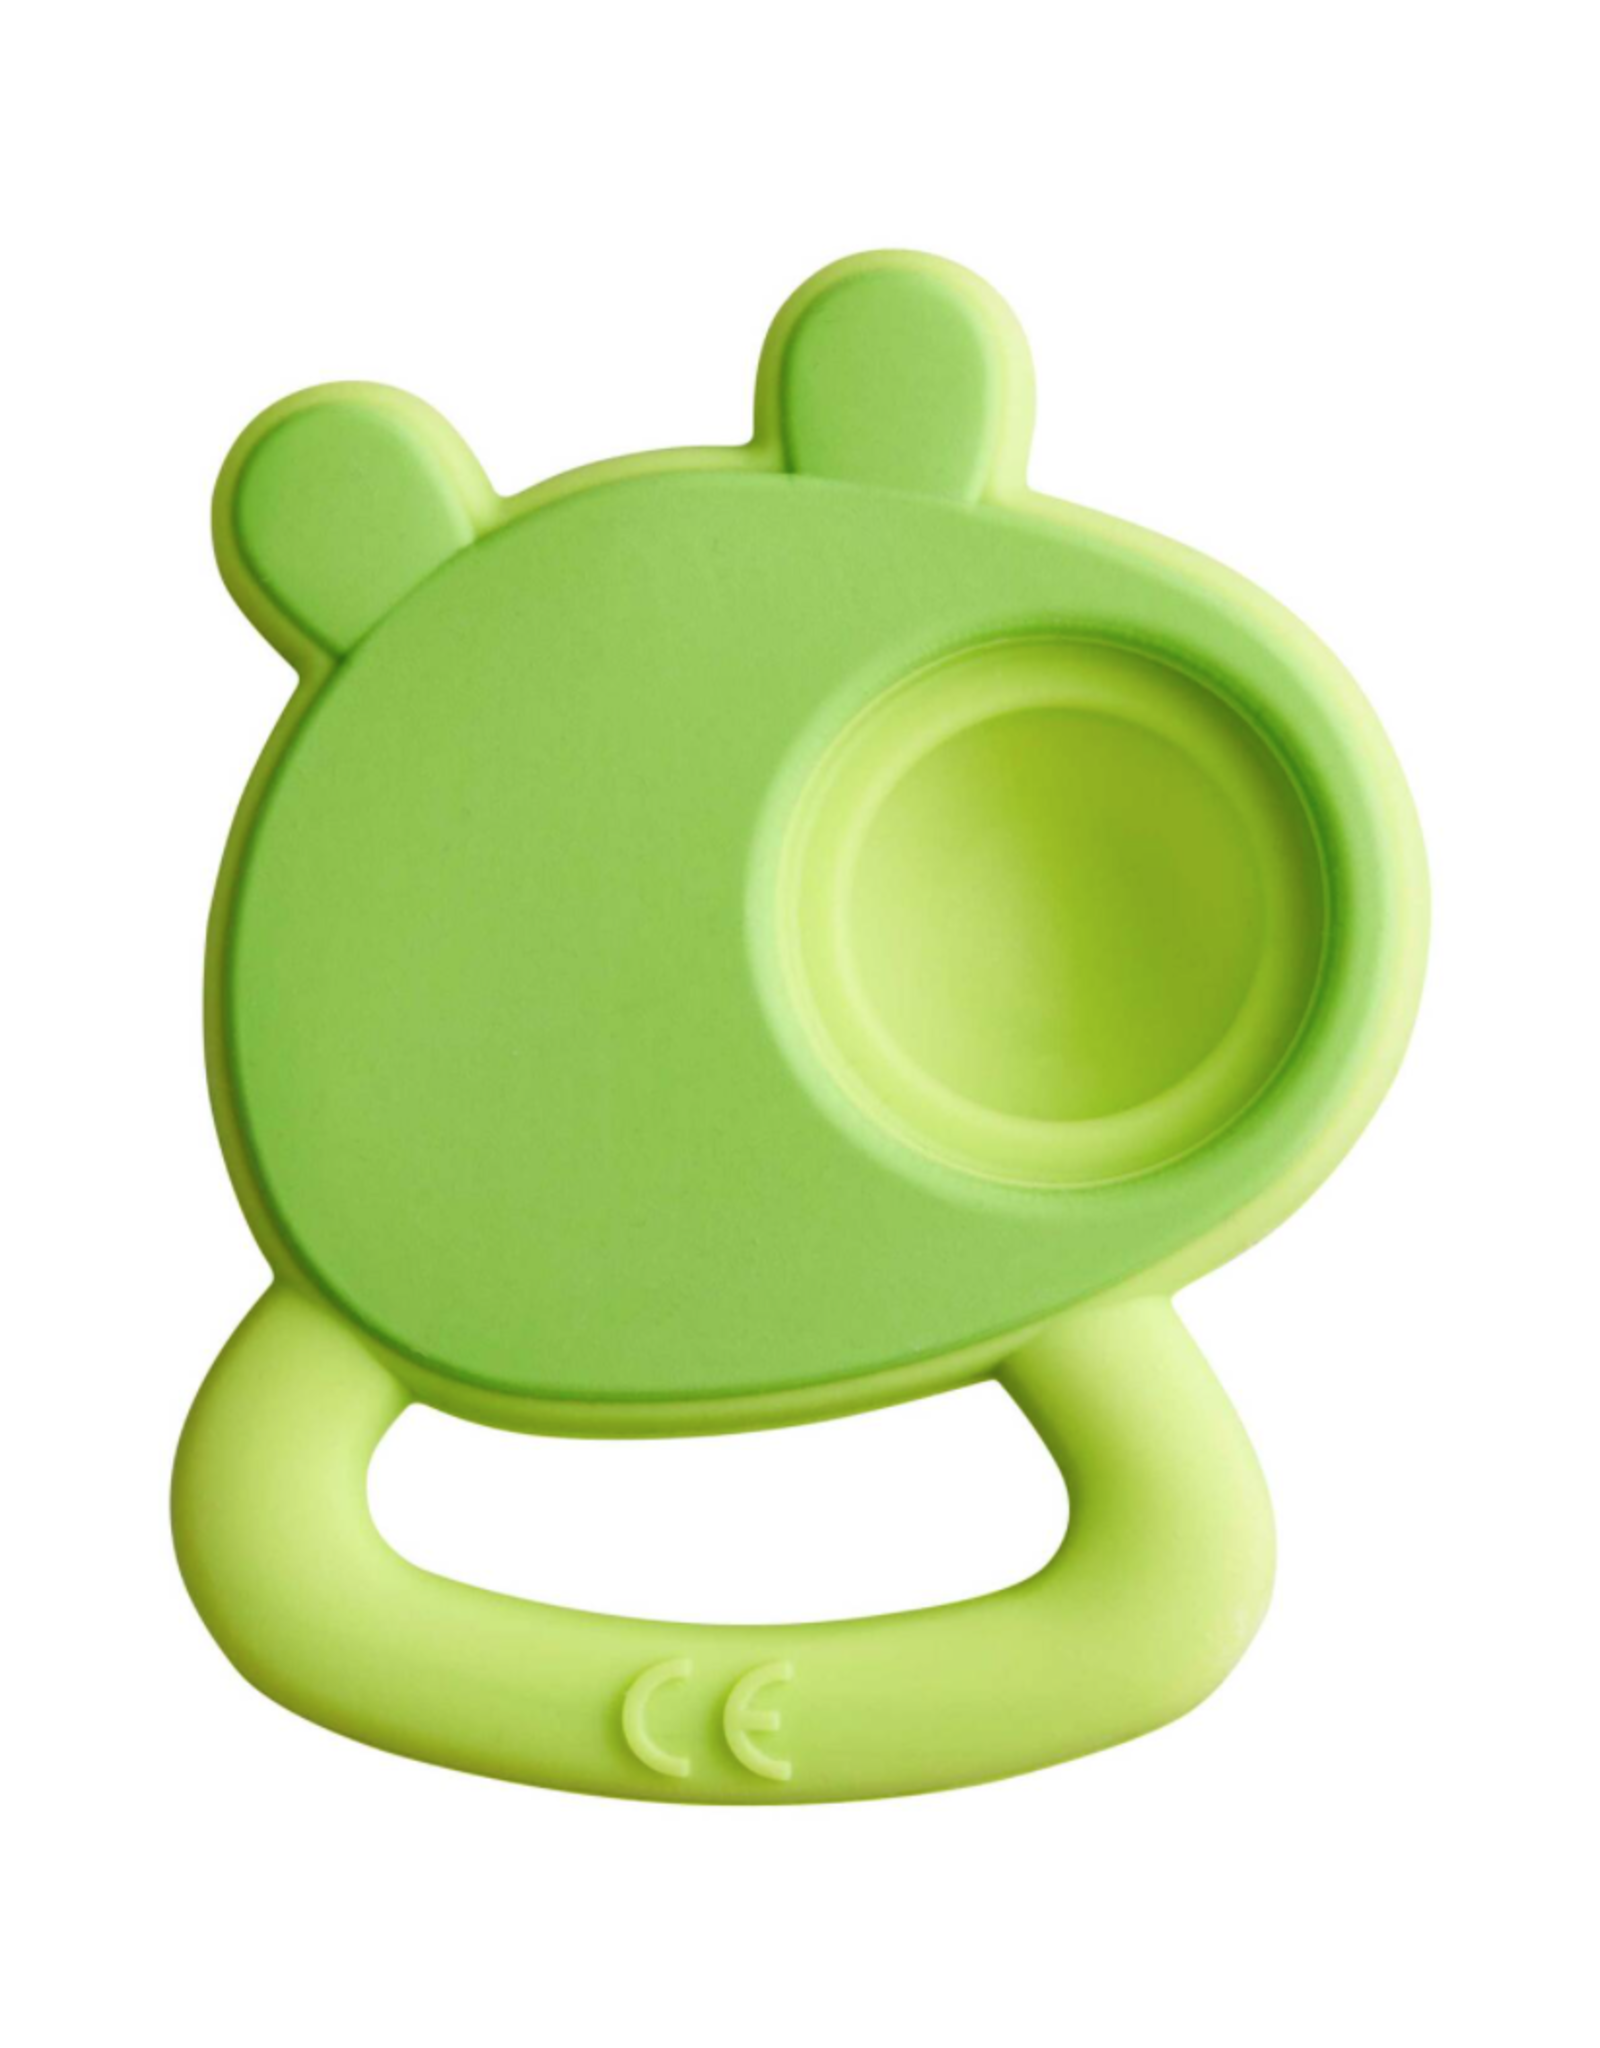 Haba Clutching Toy, Popping Frog